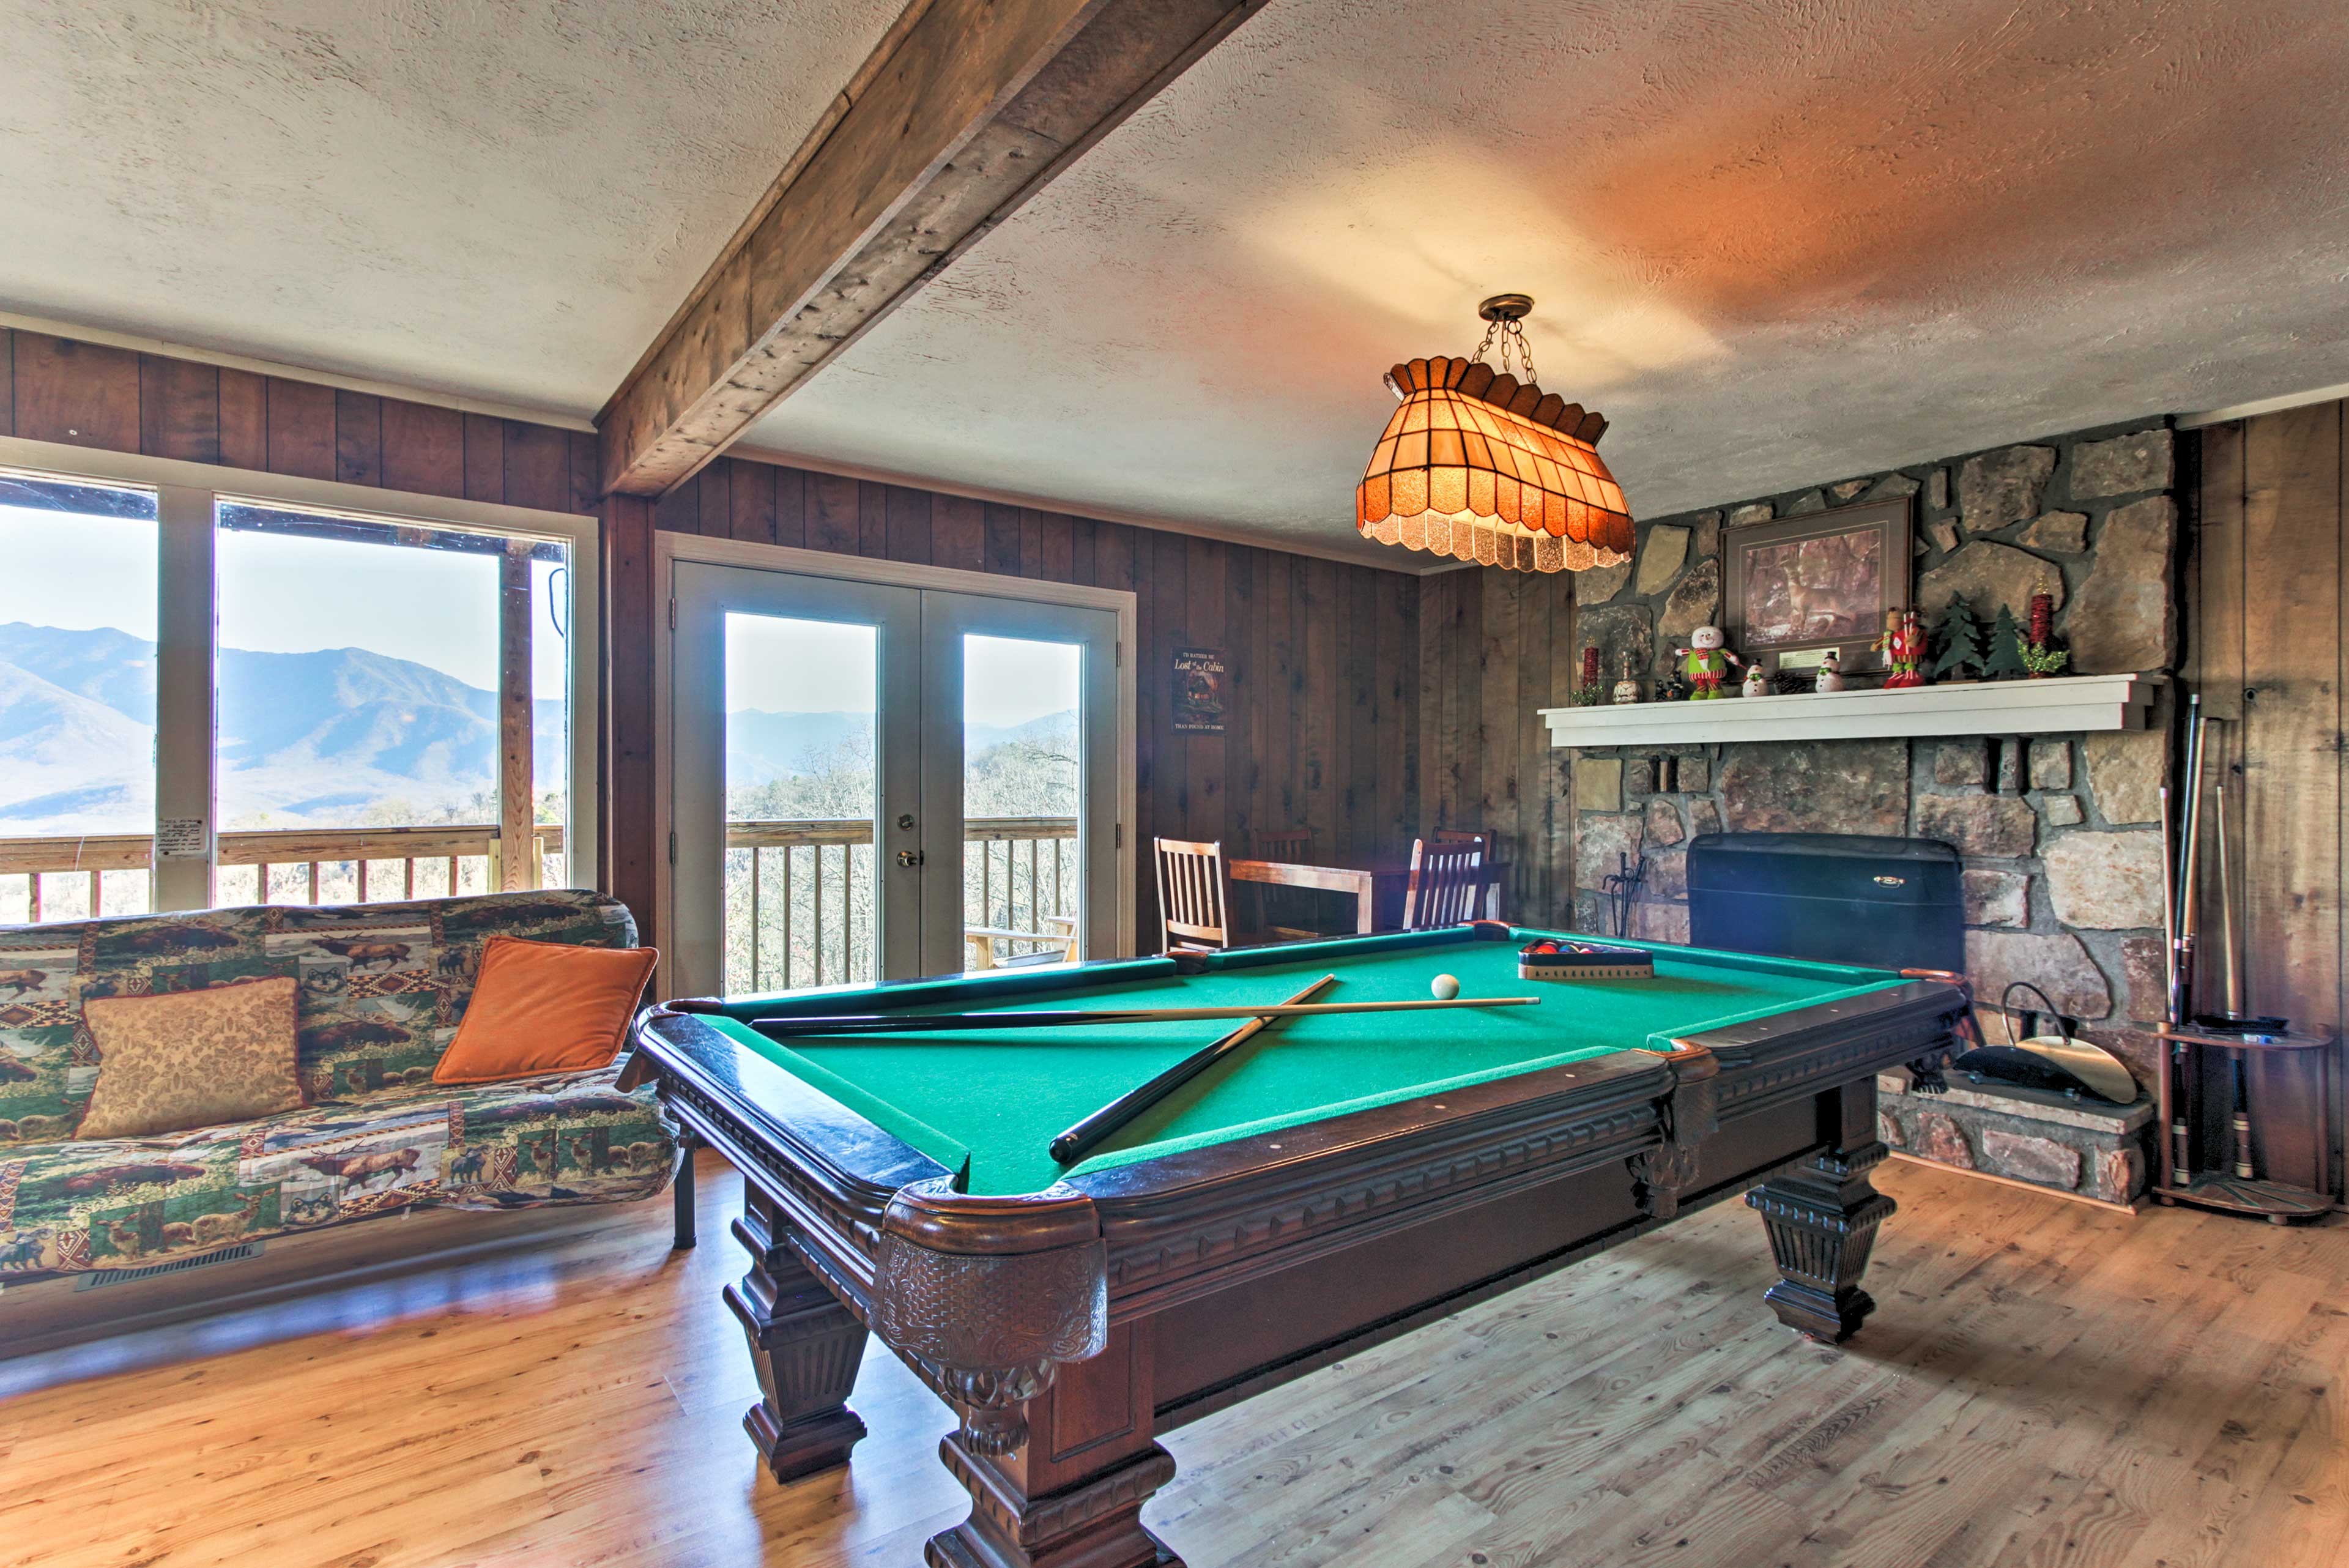 You'll love the superb amenities like a private hot tub, pool table, and more.